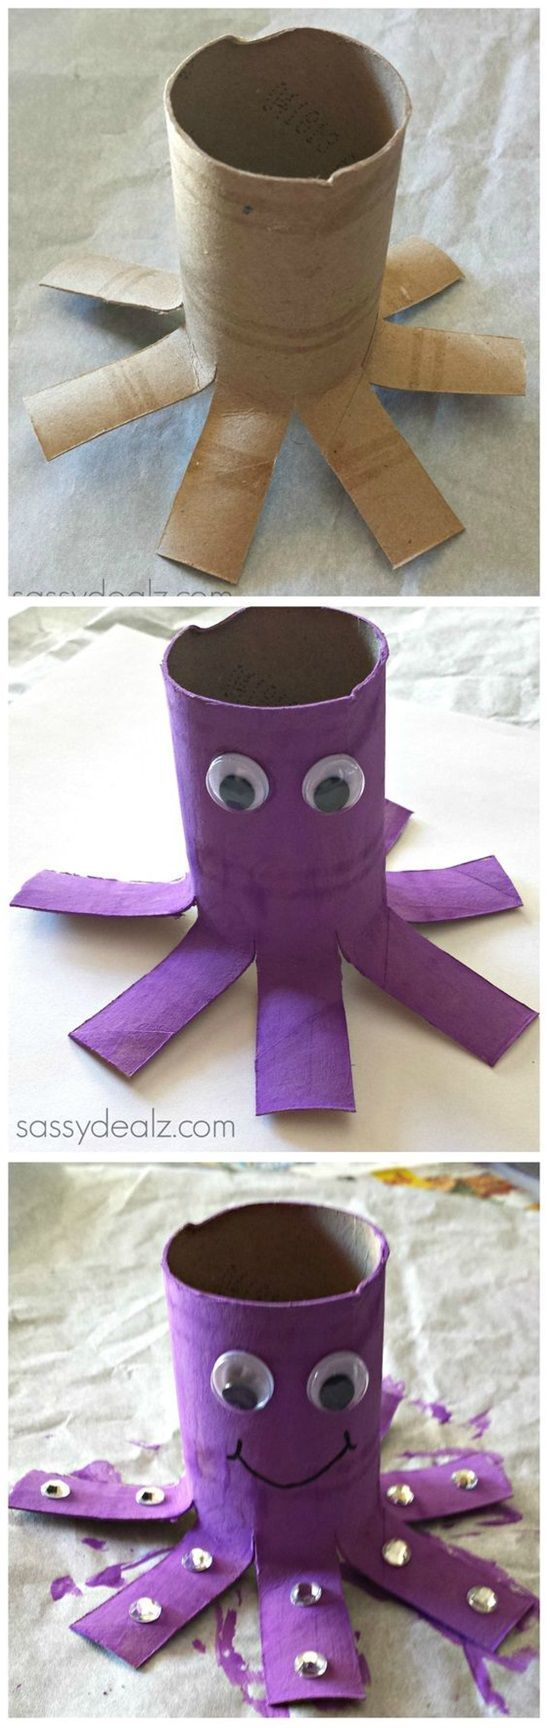 We love toilet paper rolls! Darling octopus paper roll craft for kids.